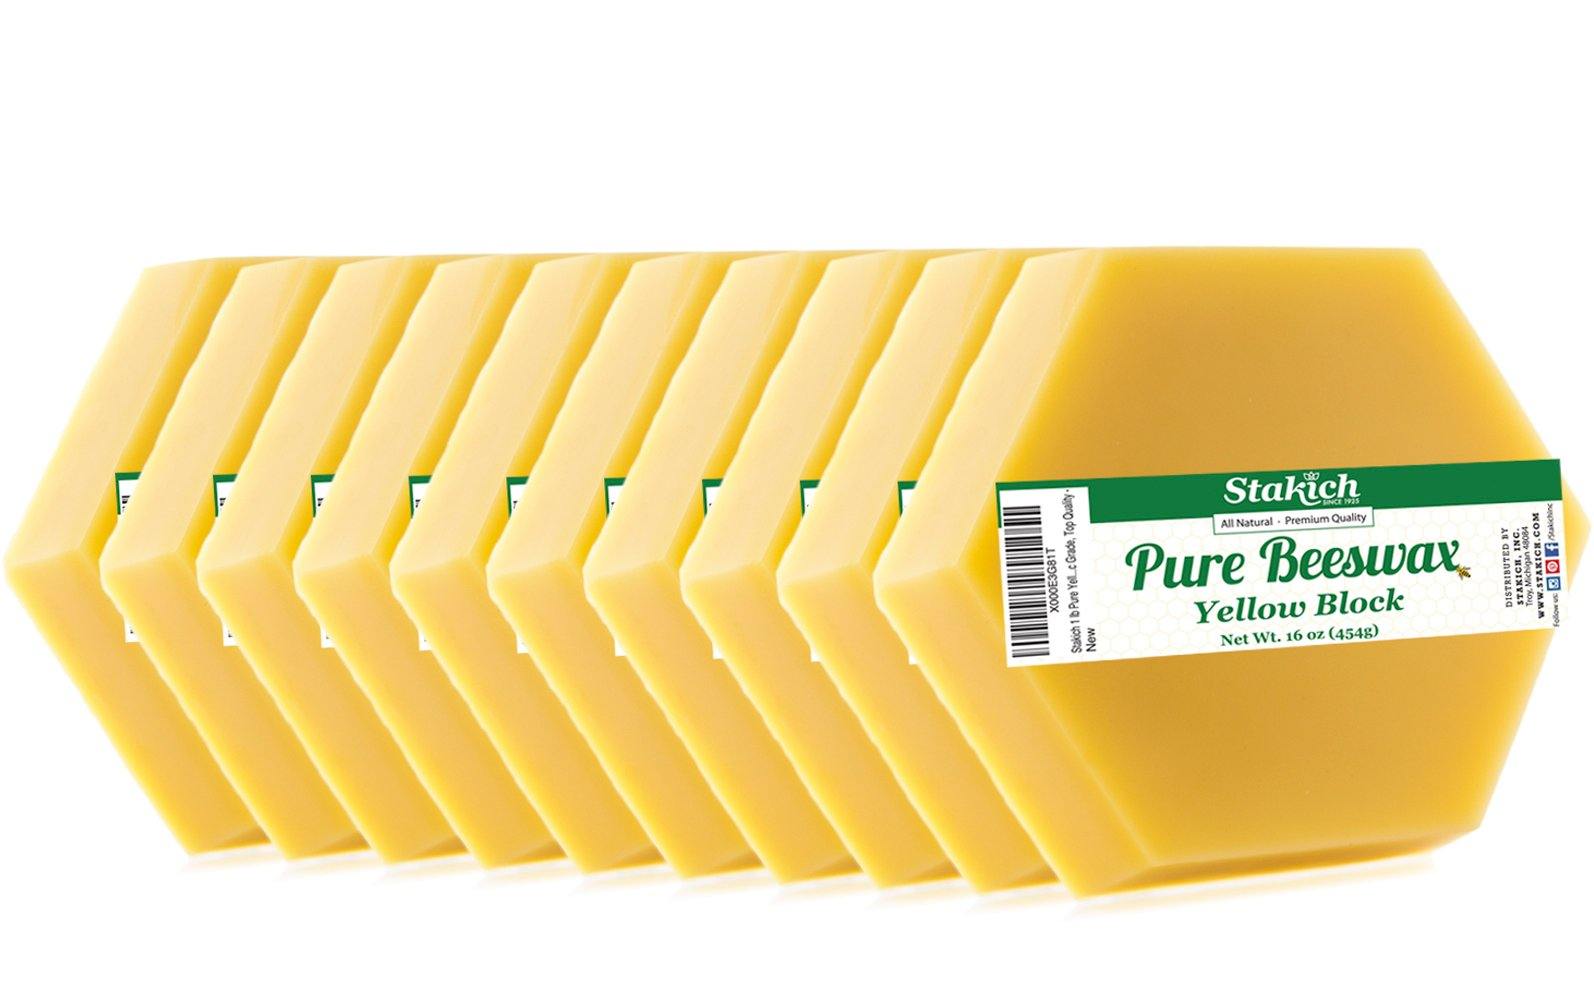 Stakich Yellow BEESWAX Blocks - 100% Pure, All Natural, Cosmetic Grade, Premium Quality - 10 lb (in 1 lb blocks)